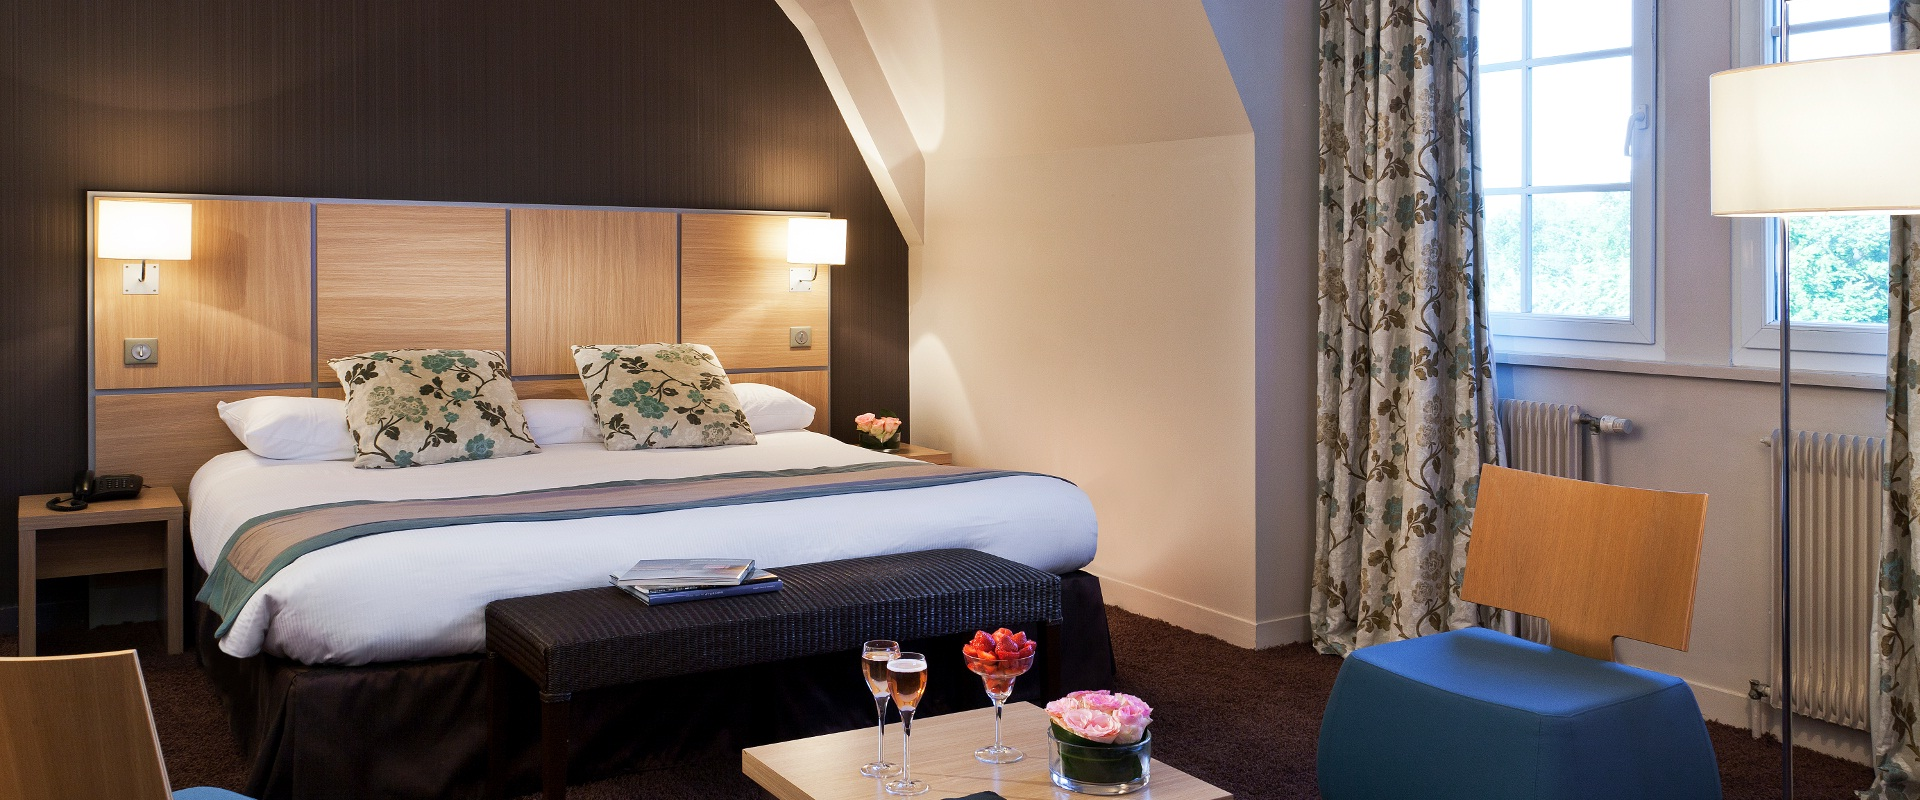 chambre hotel chantilly